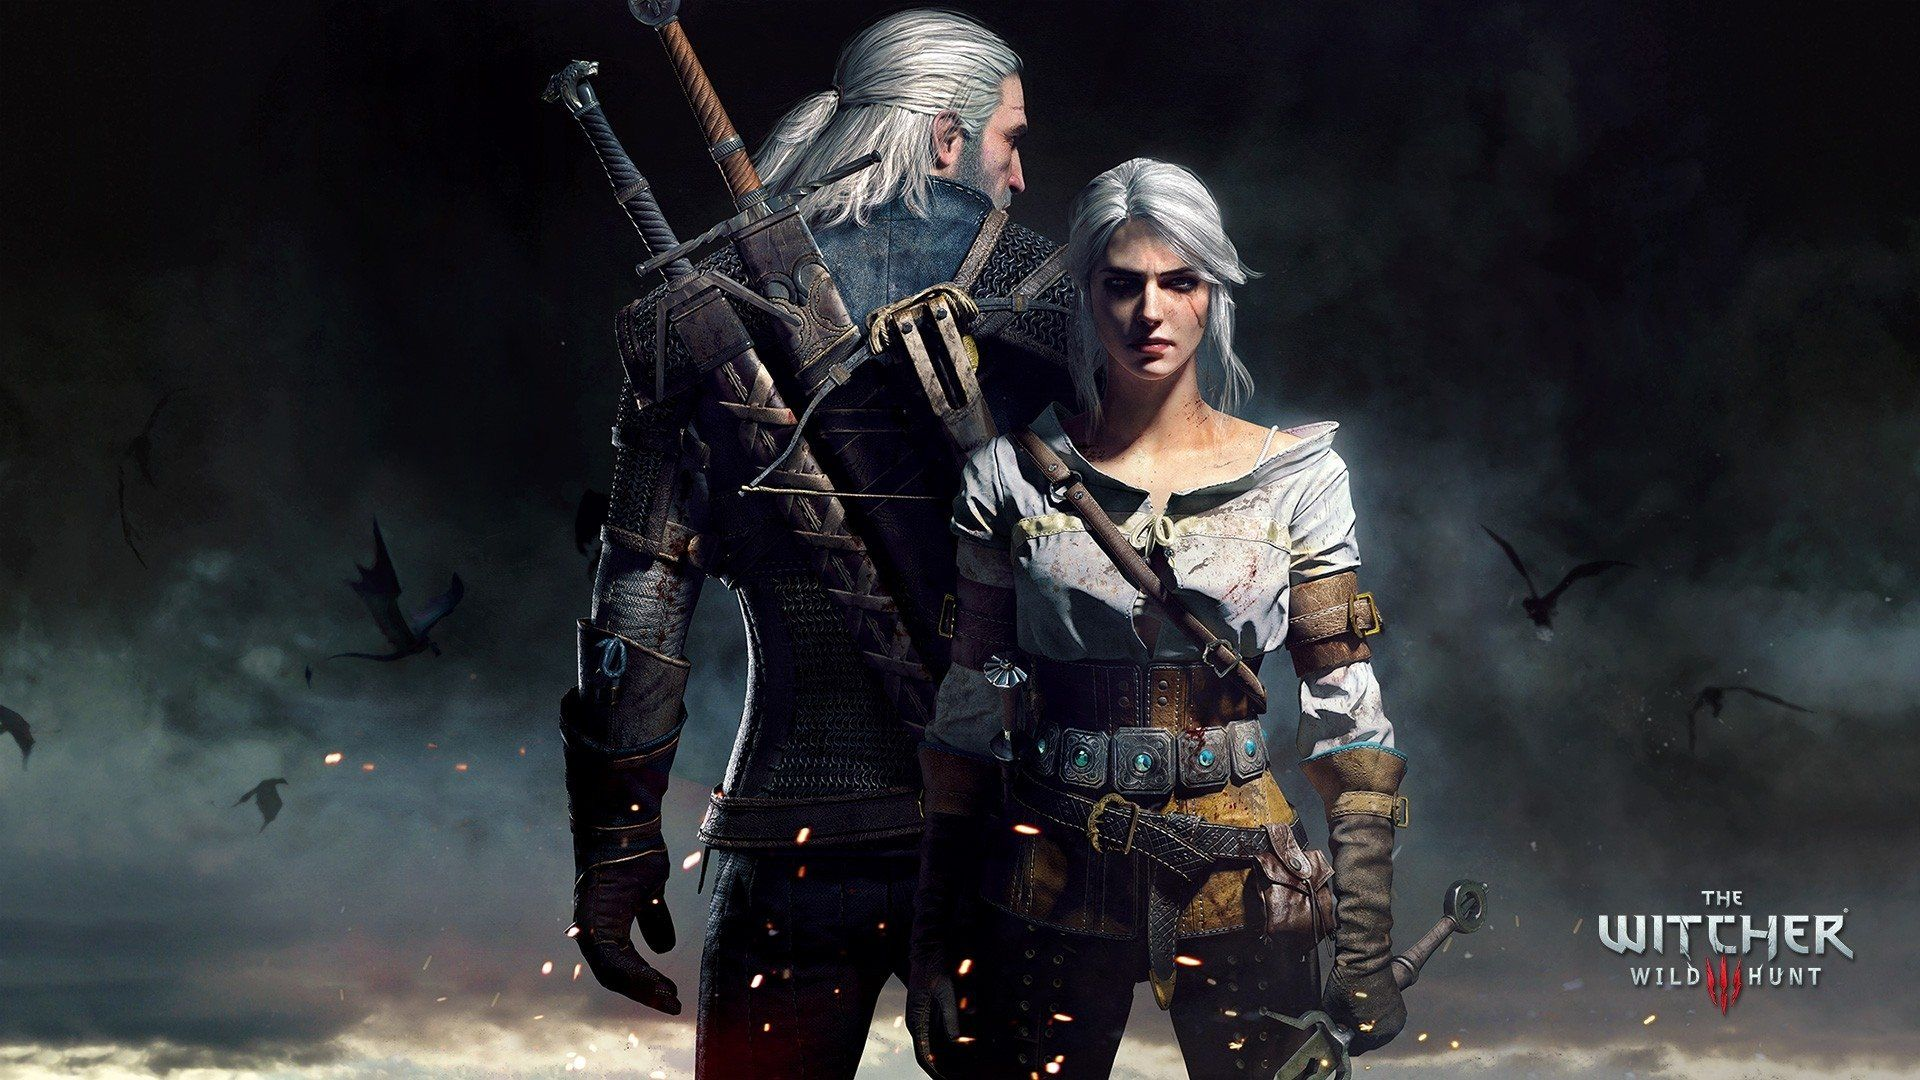 Geralt And Ciri Video Game The Witcher 3 Wild Hunt The Witcher Geralt Of Rivia Ciri The Witcher Wallpaper The Witcher Wild Hunt Geralt And Ciri The Witcher